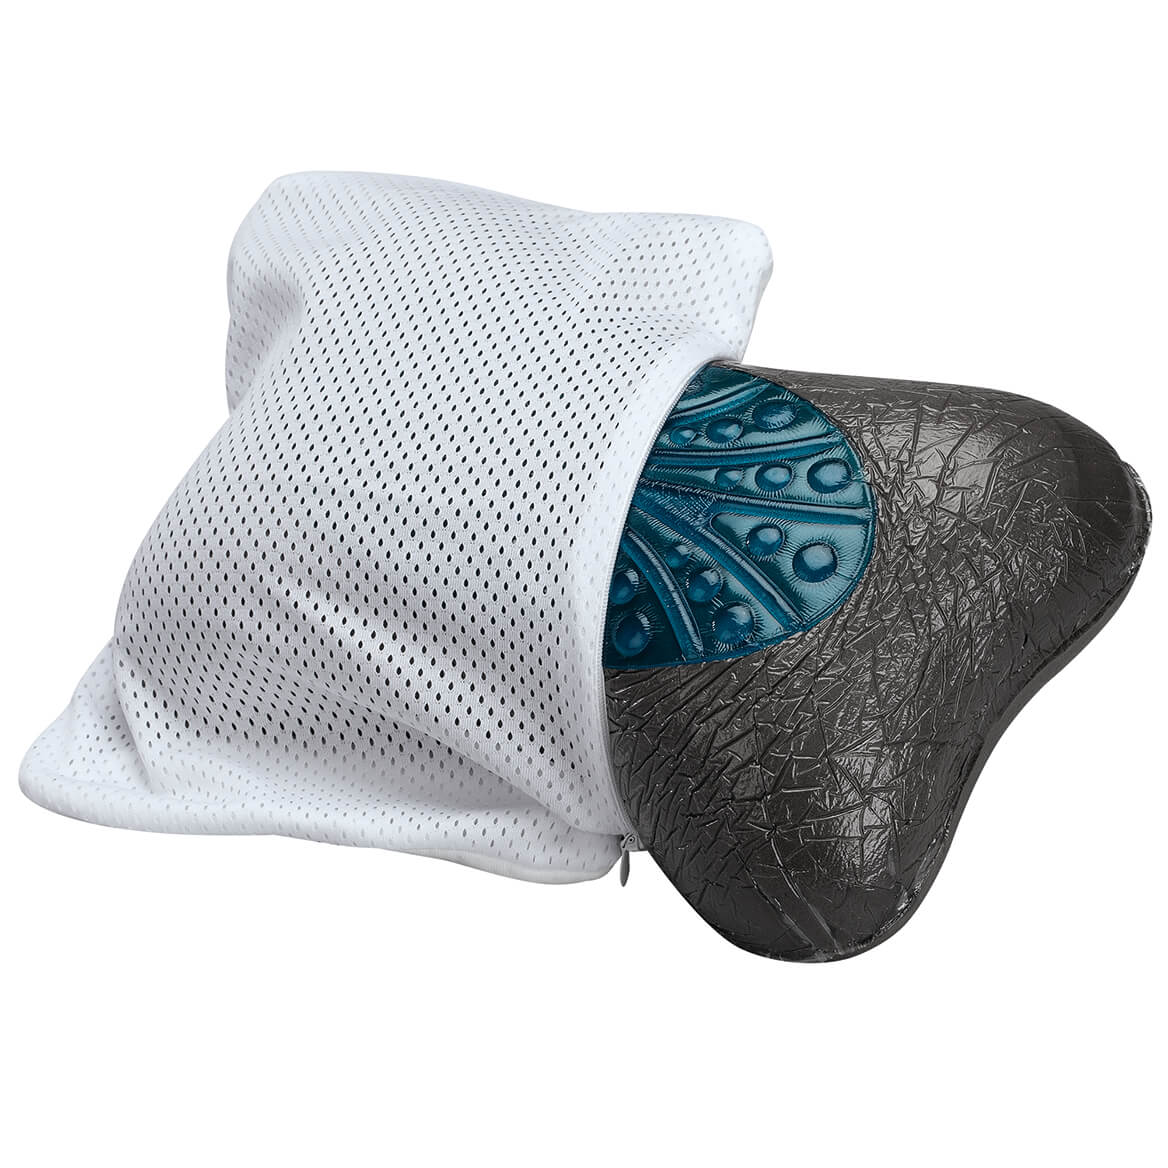 Charcoal Infused Bone-Shaped Pillow-369601